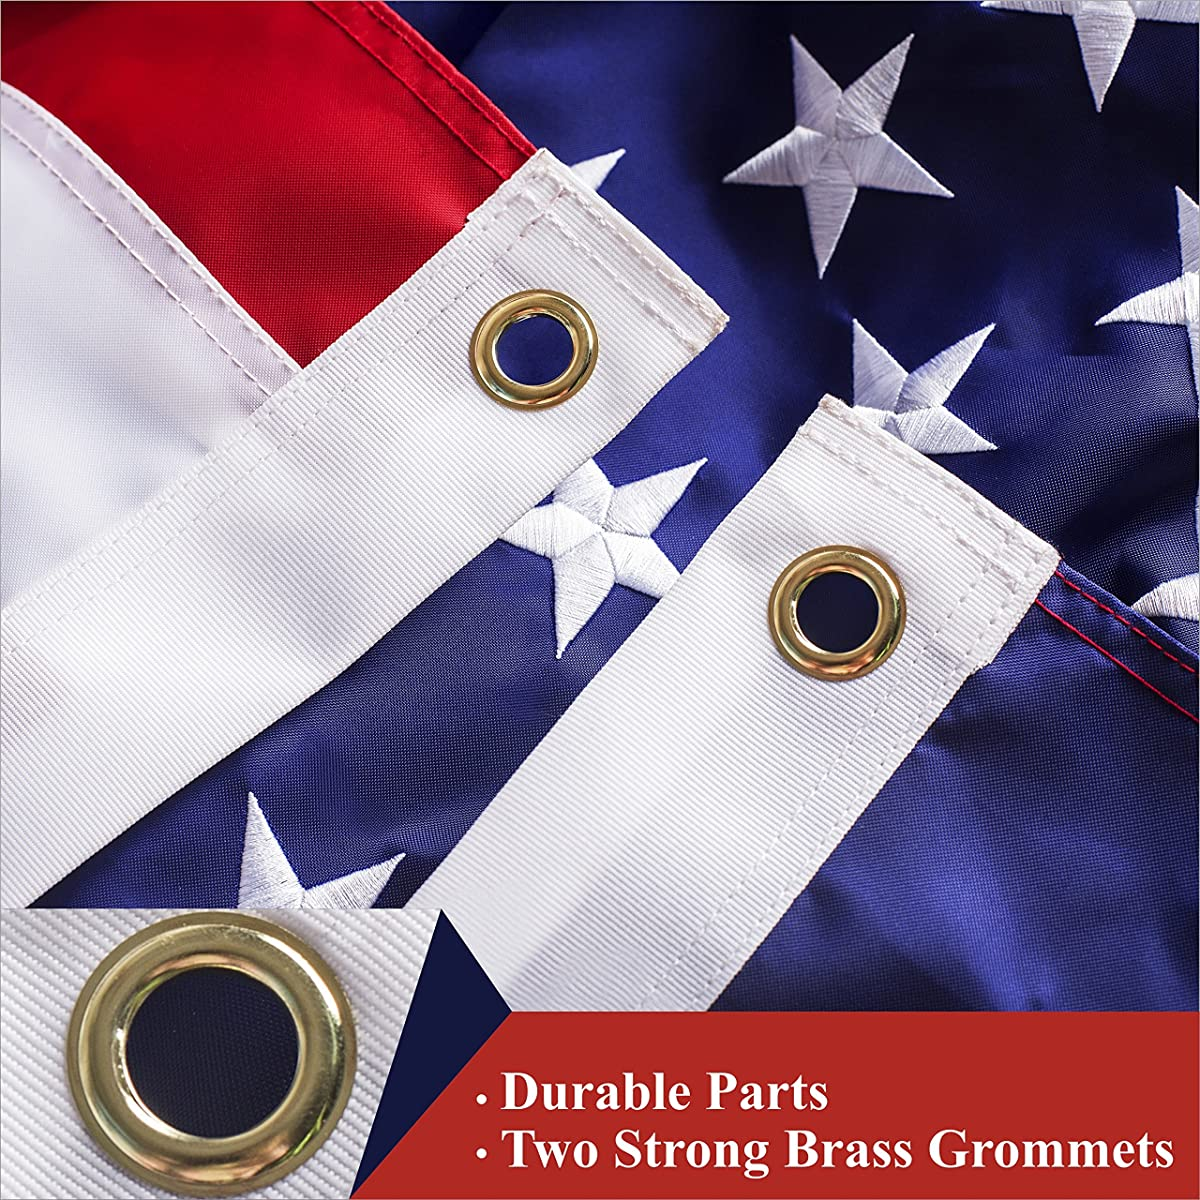 G128 American Flag 3x5 Ft Embroidered Stars Sewn Stripes Brass Grommets 210D Quality Oxford Nylon